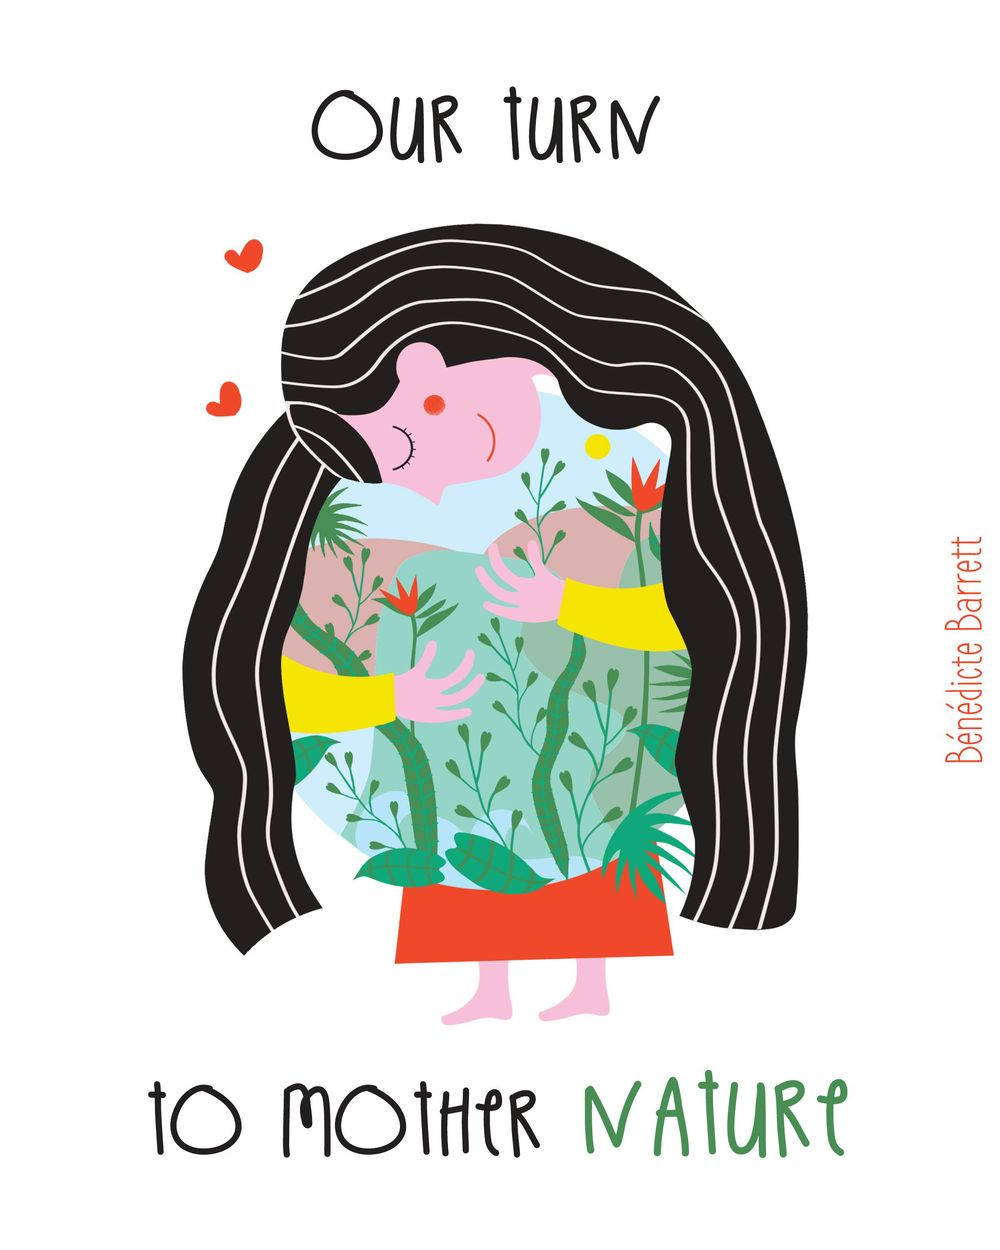 Our turn to mother nature - image 2 - student project